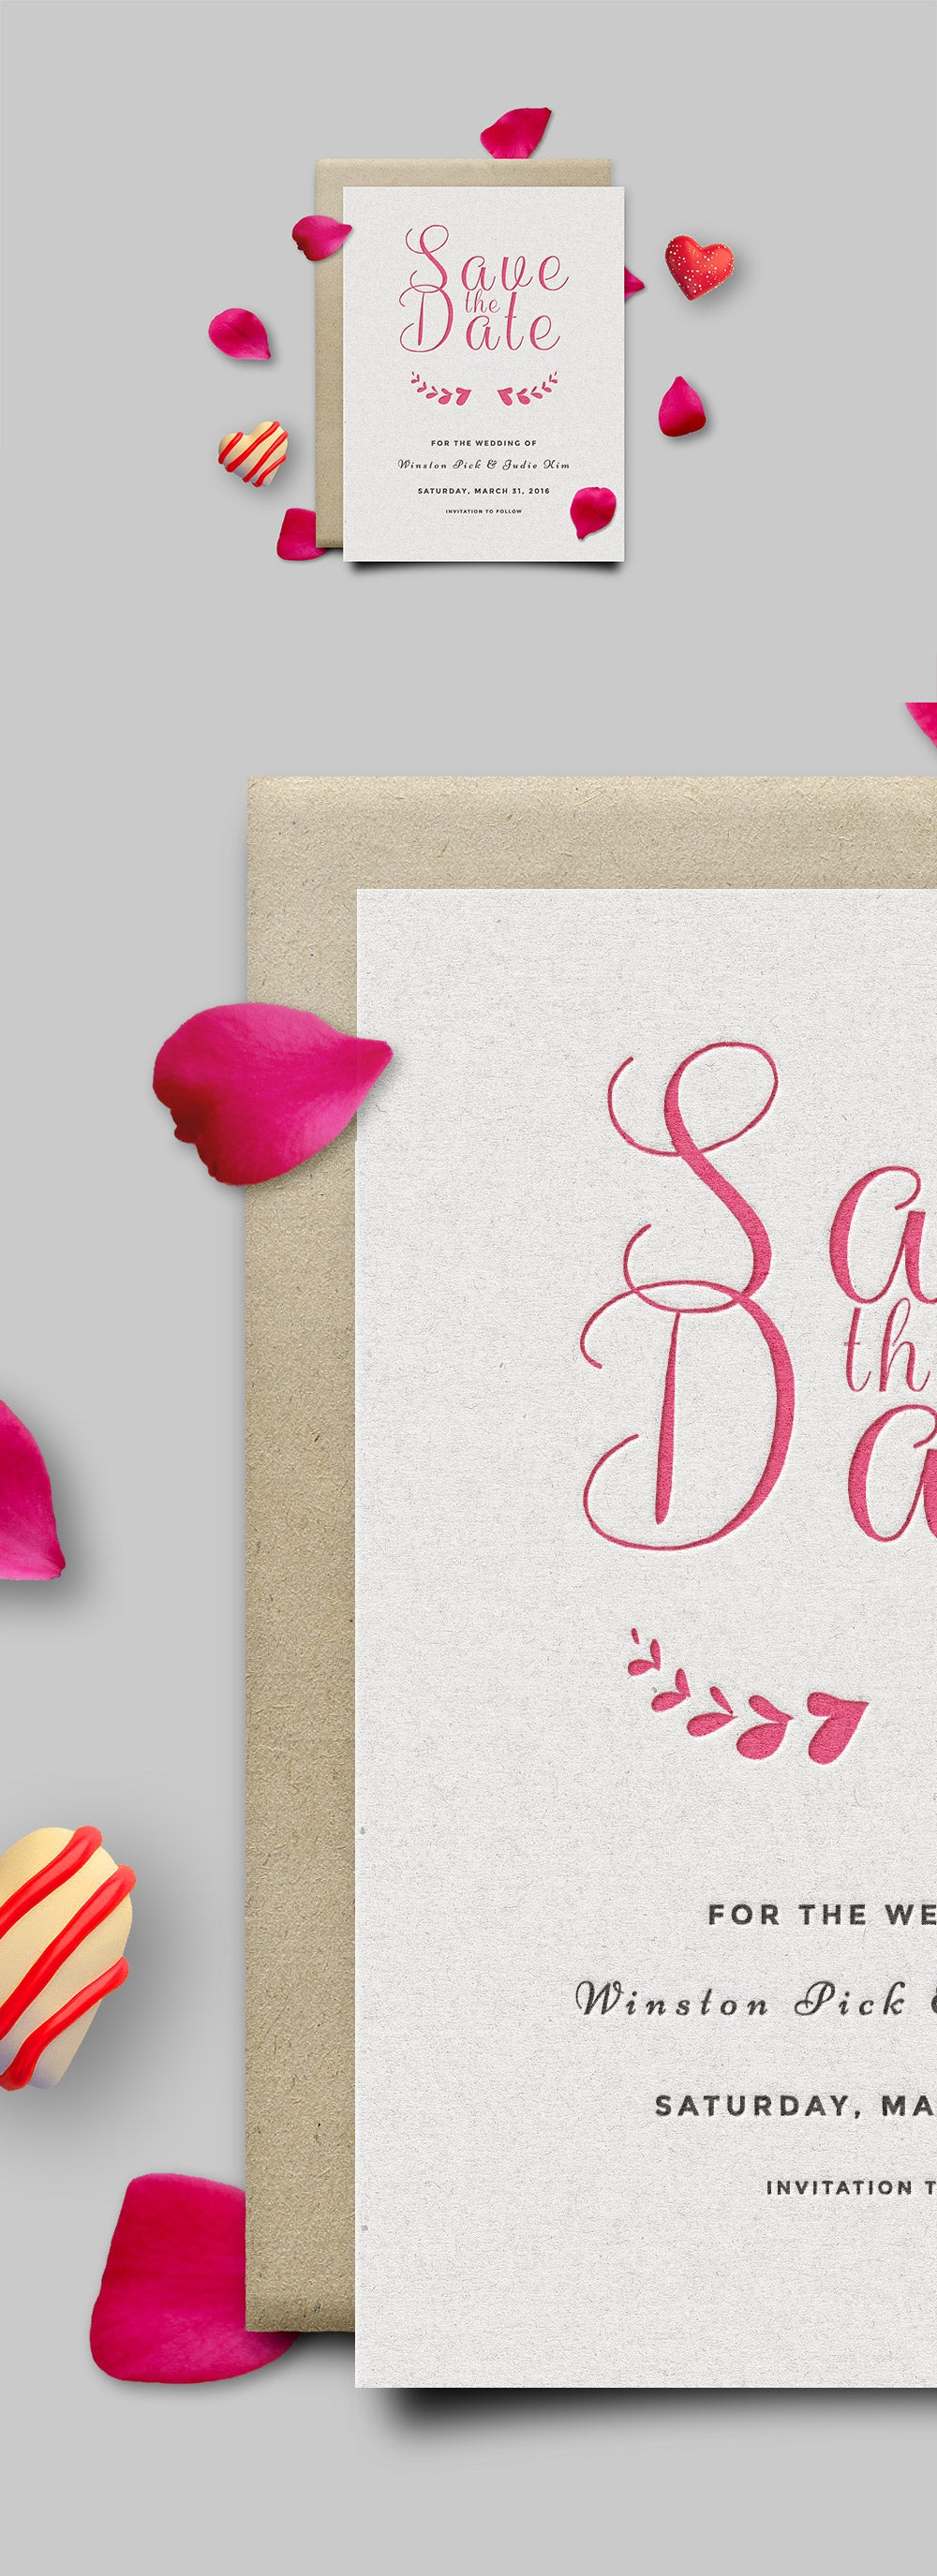 Free Save The Date Or Valentines Day Invitation Card Mockup Psd